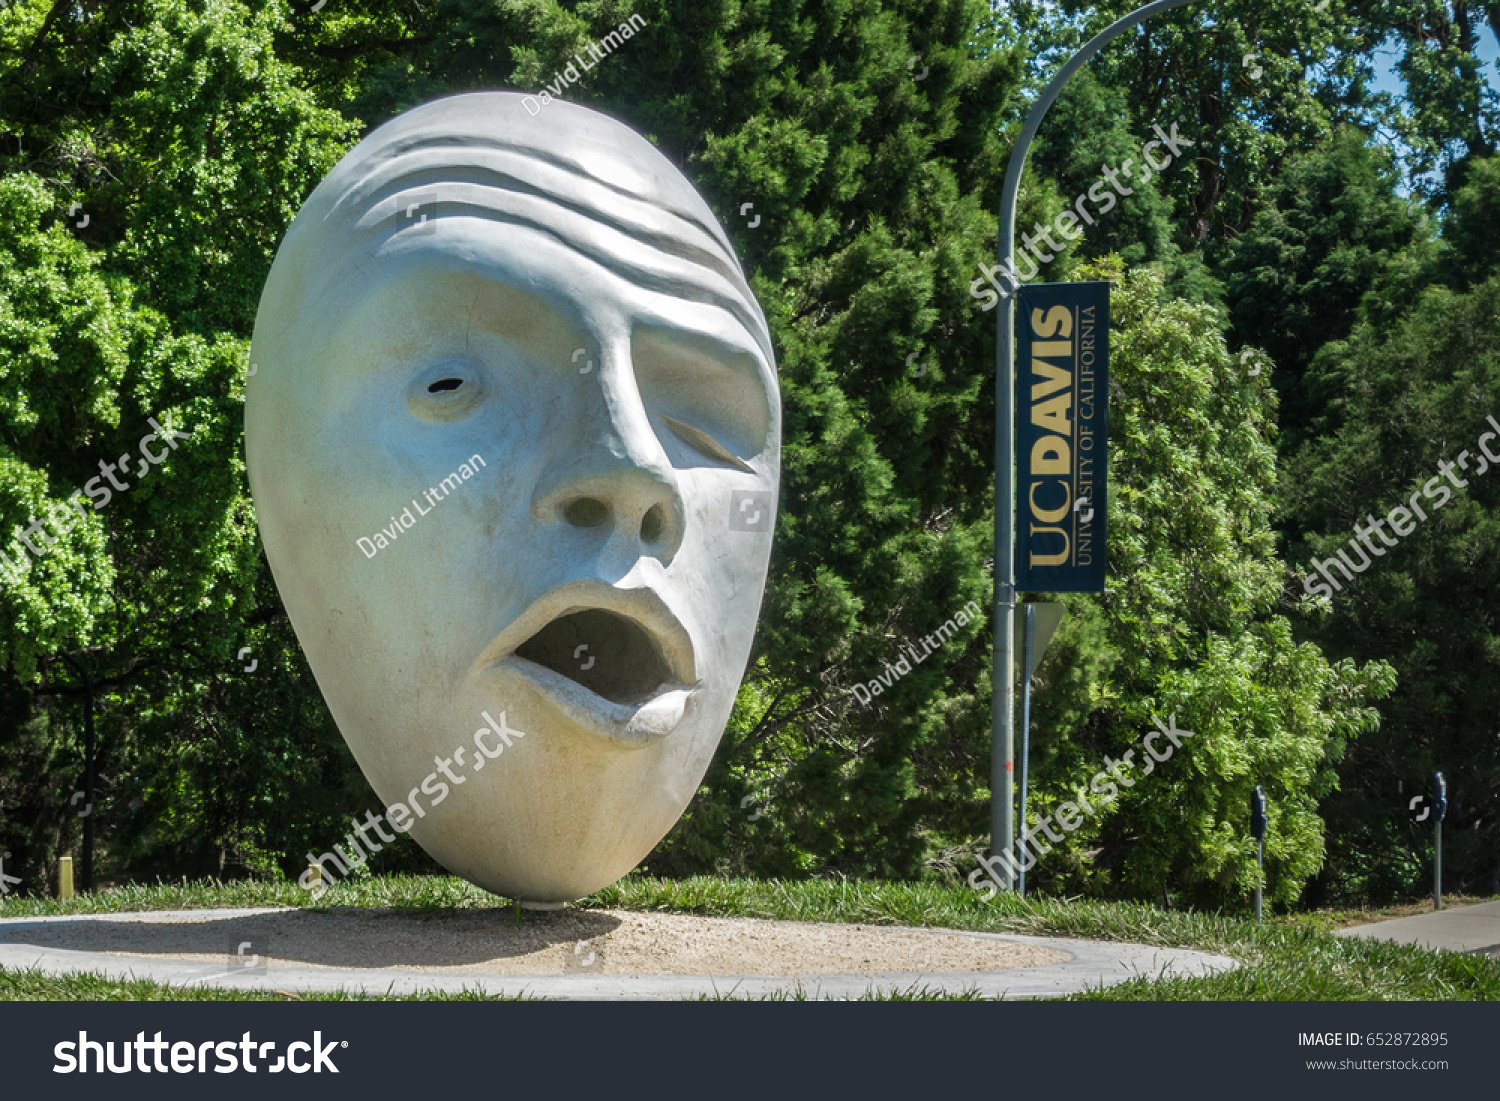 """Davis, California, USA - April 27, 2017: There are seven unique """"Egghead"""" sculptures in various locations throughout the campus of University of California, Davis (UC Davis), home of the Aggies."""